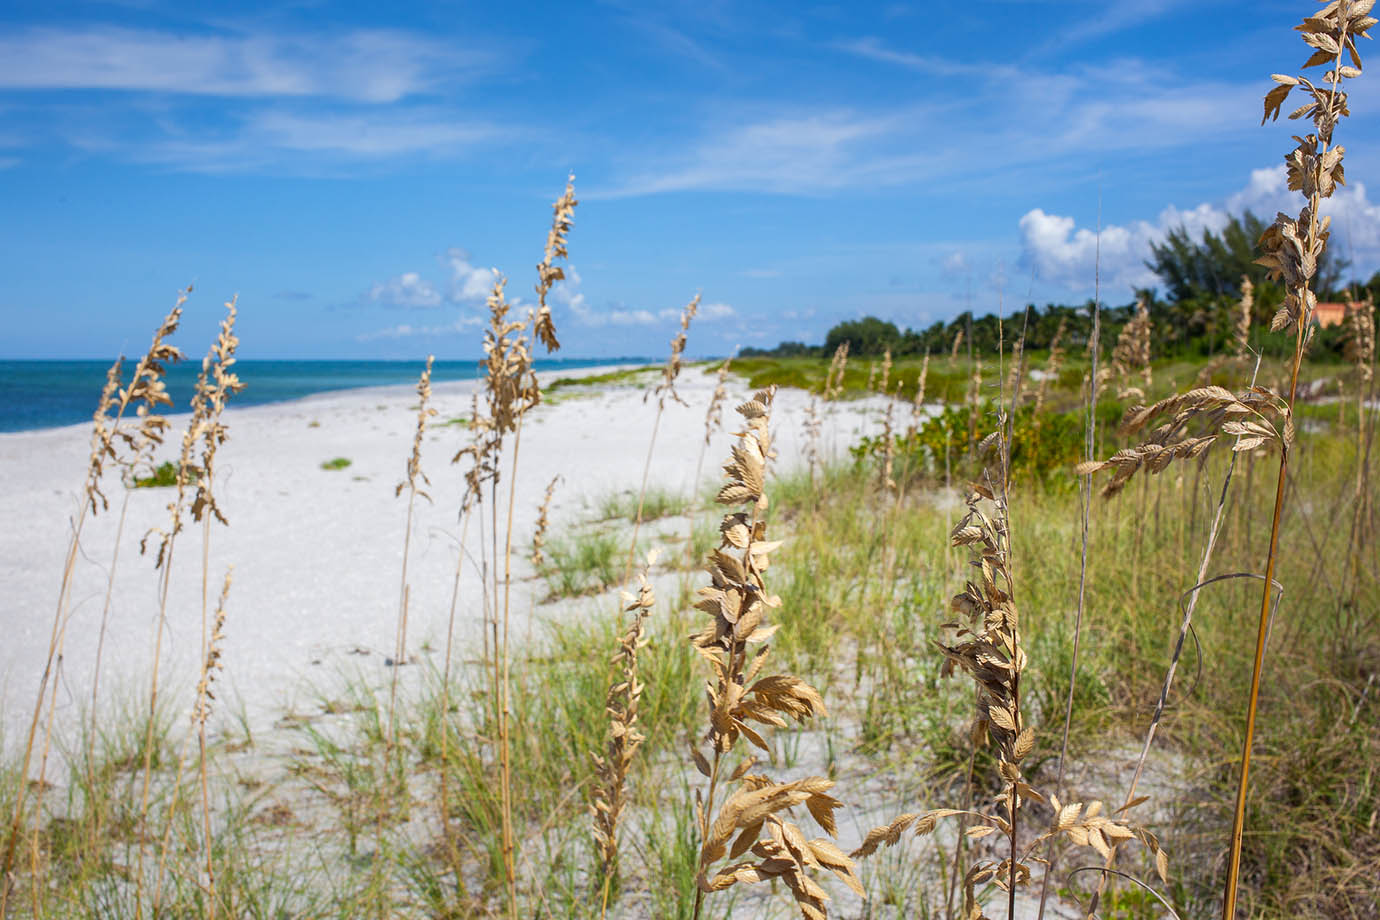 Sea Oat plants growing in the dunes of the white sands beach white the bright blue ocean in the distance on a clear sunny day in Captiva Island, FL